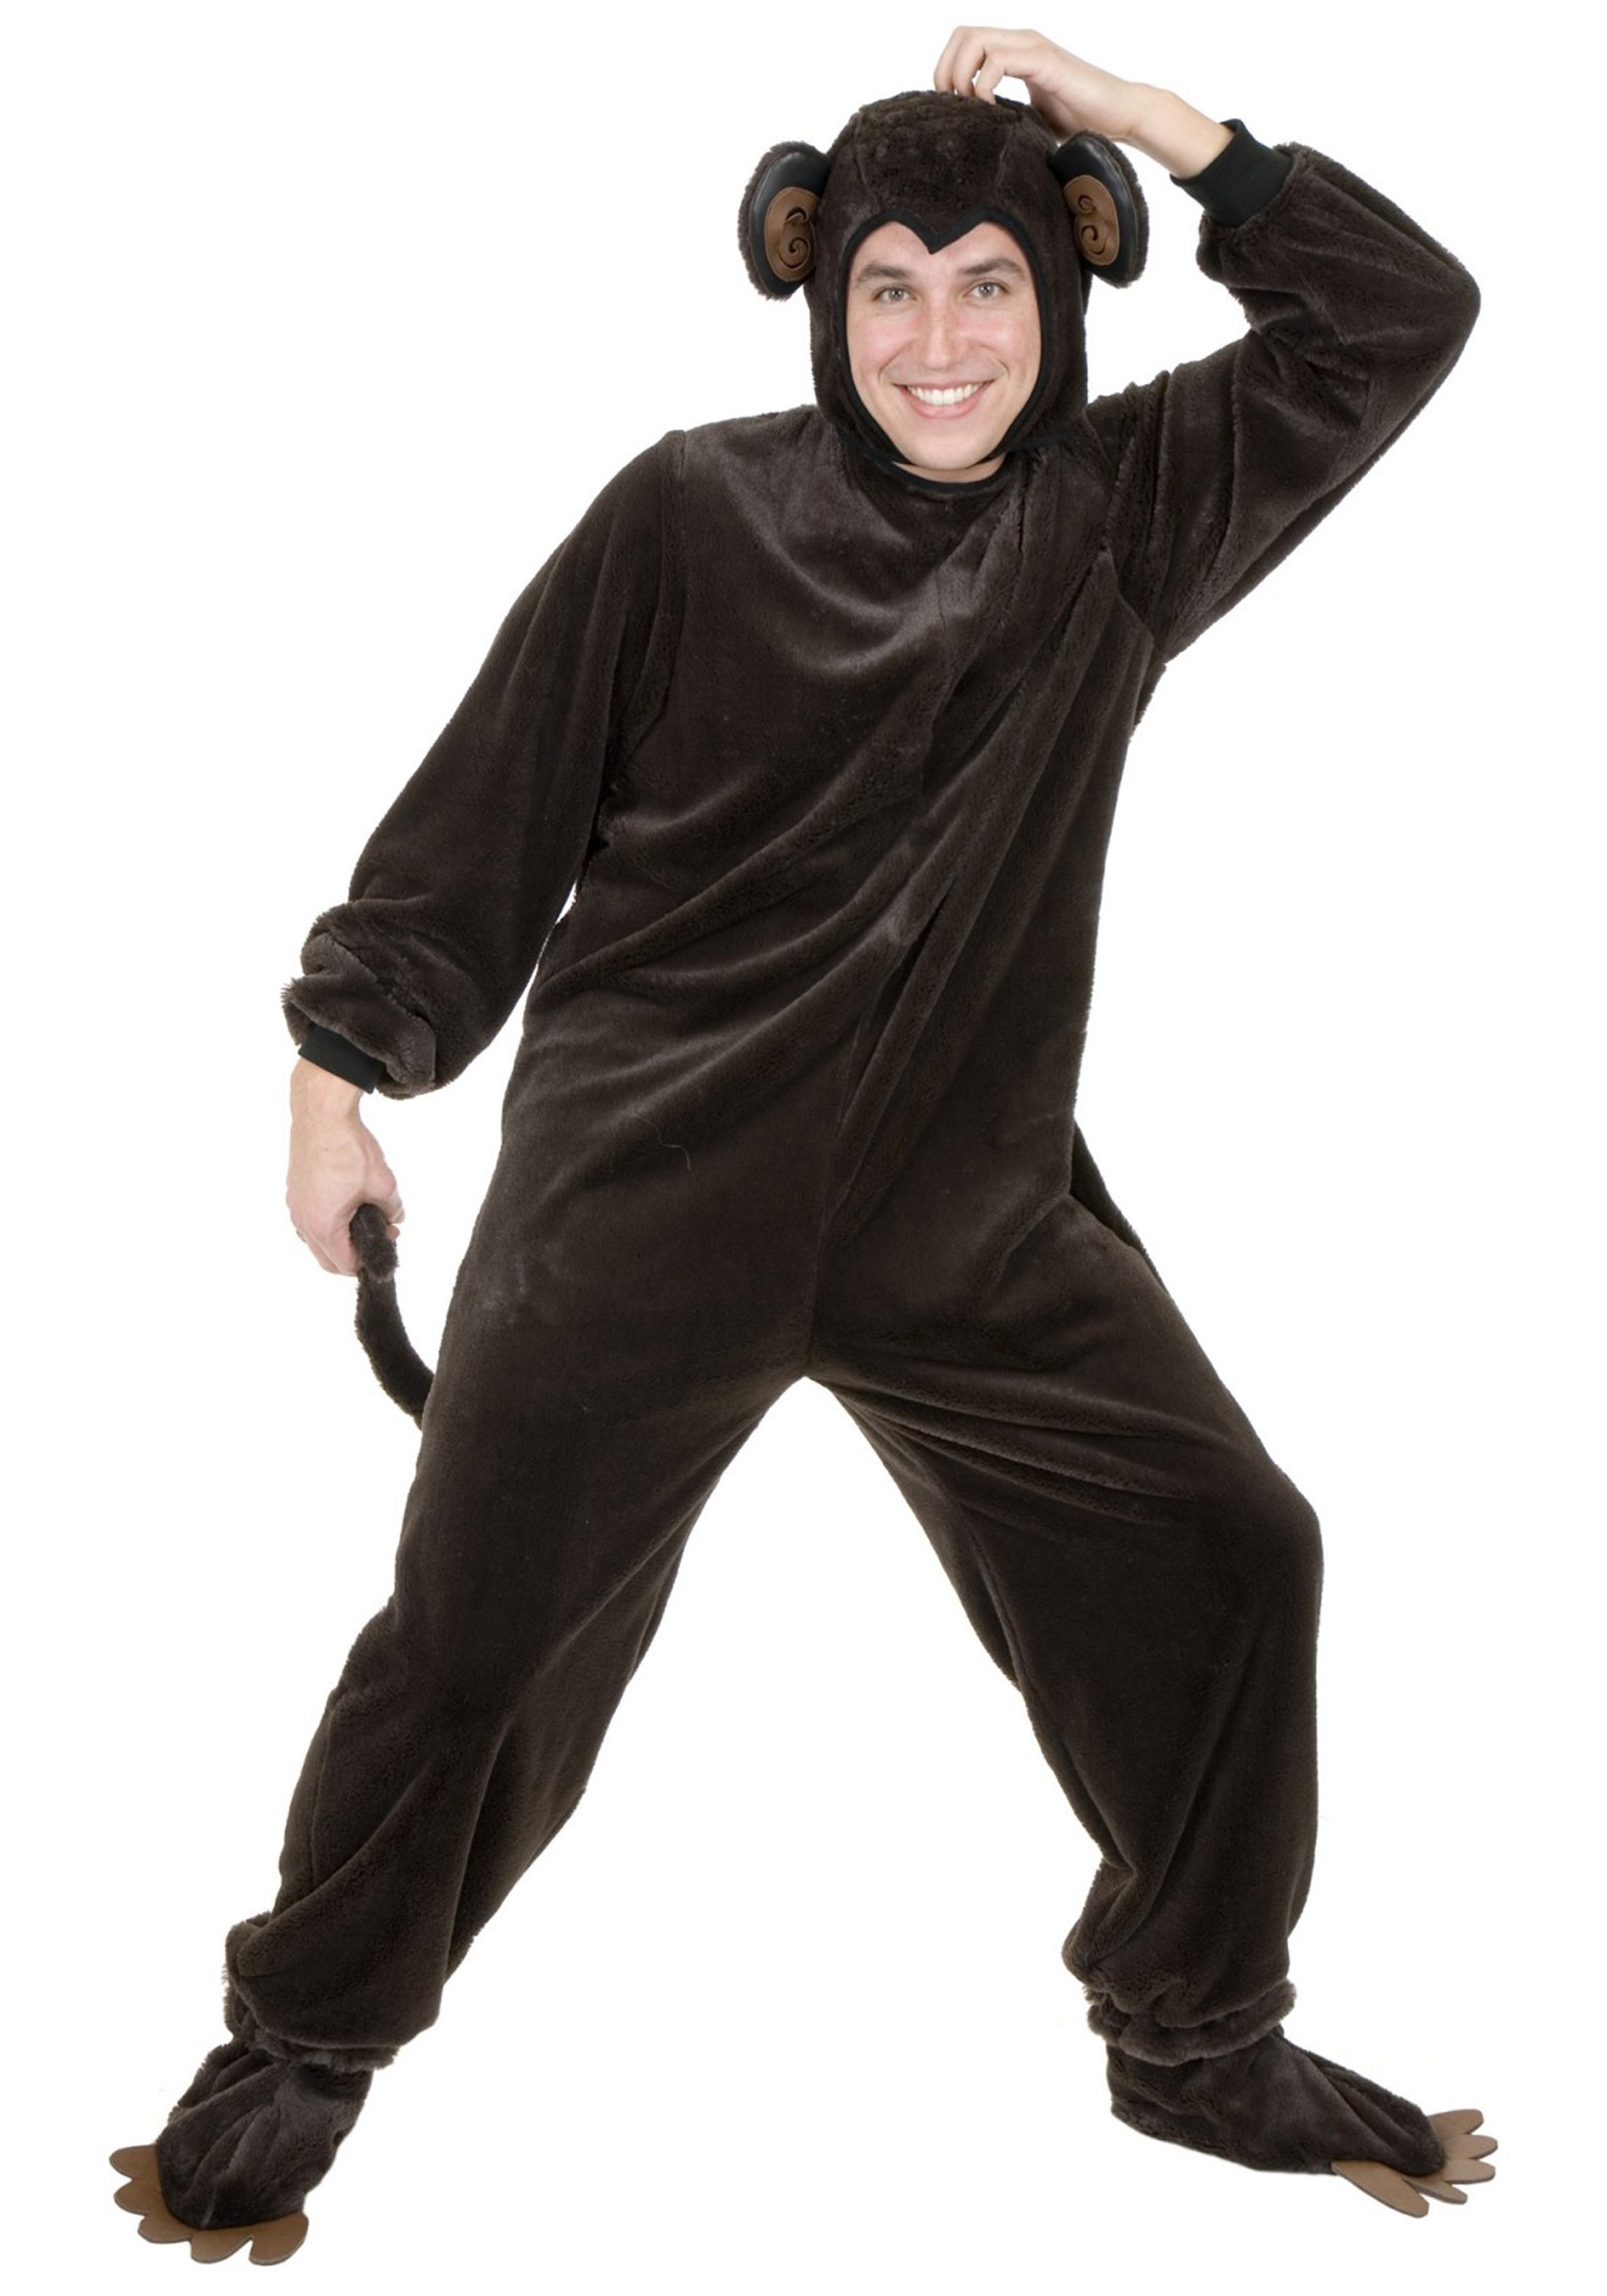 Monkey Costumes - Flying Monkey Costume